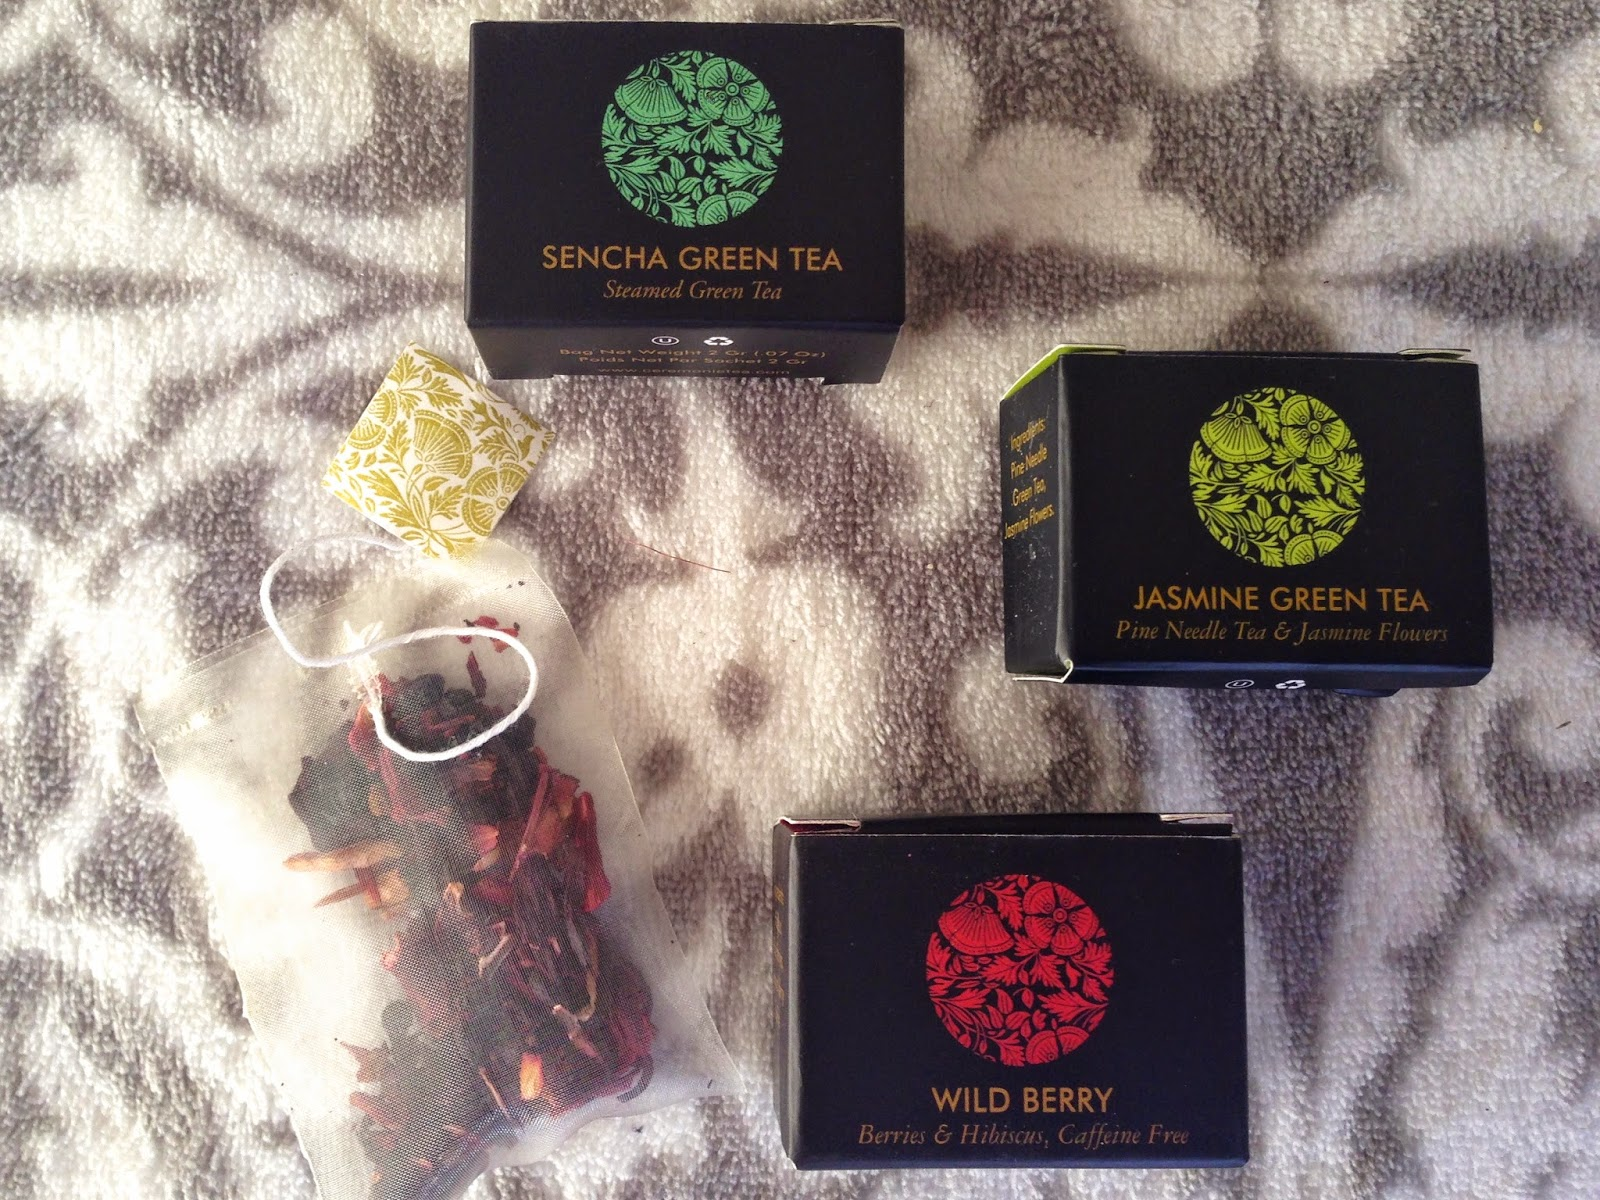 HumbleBee Ceremonie Green Tea Review